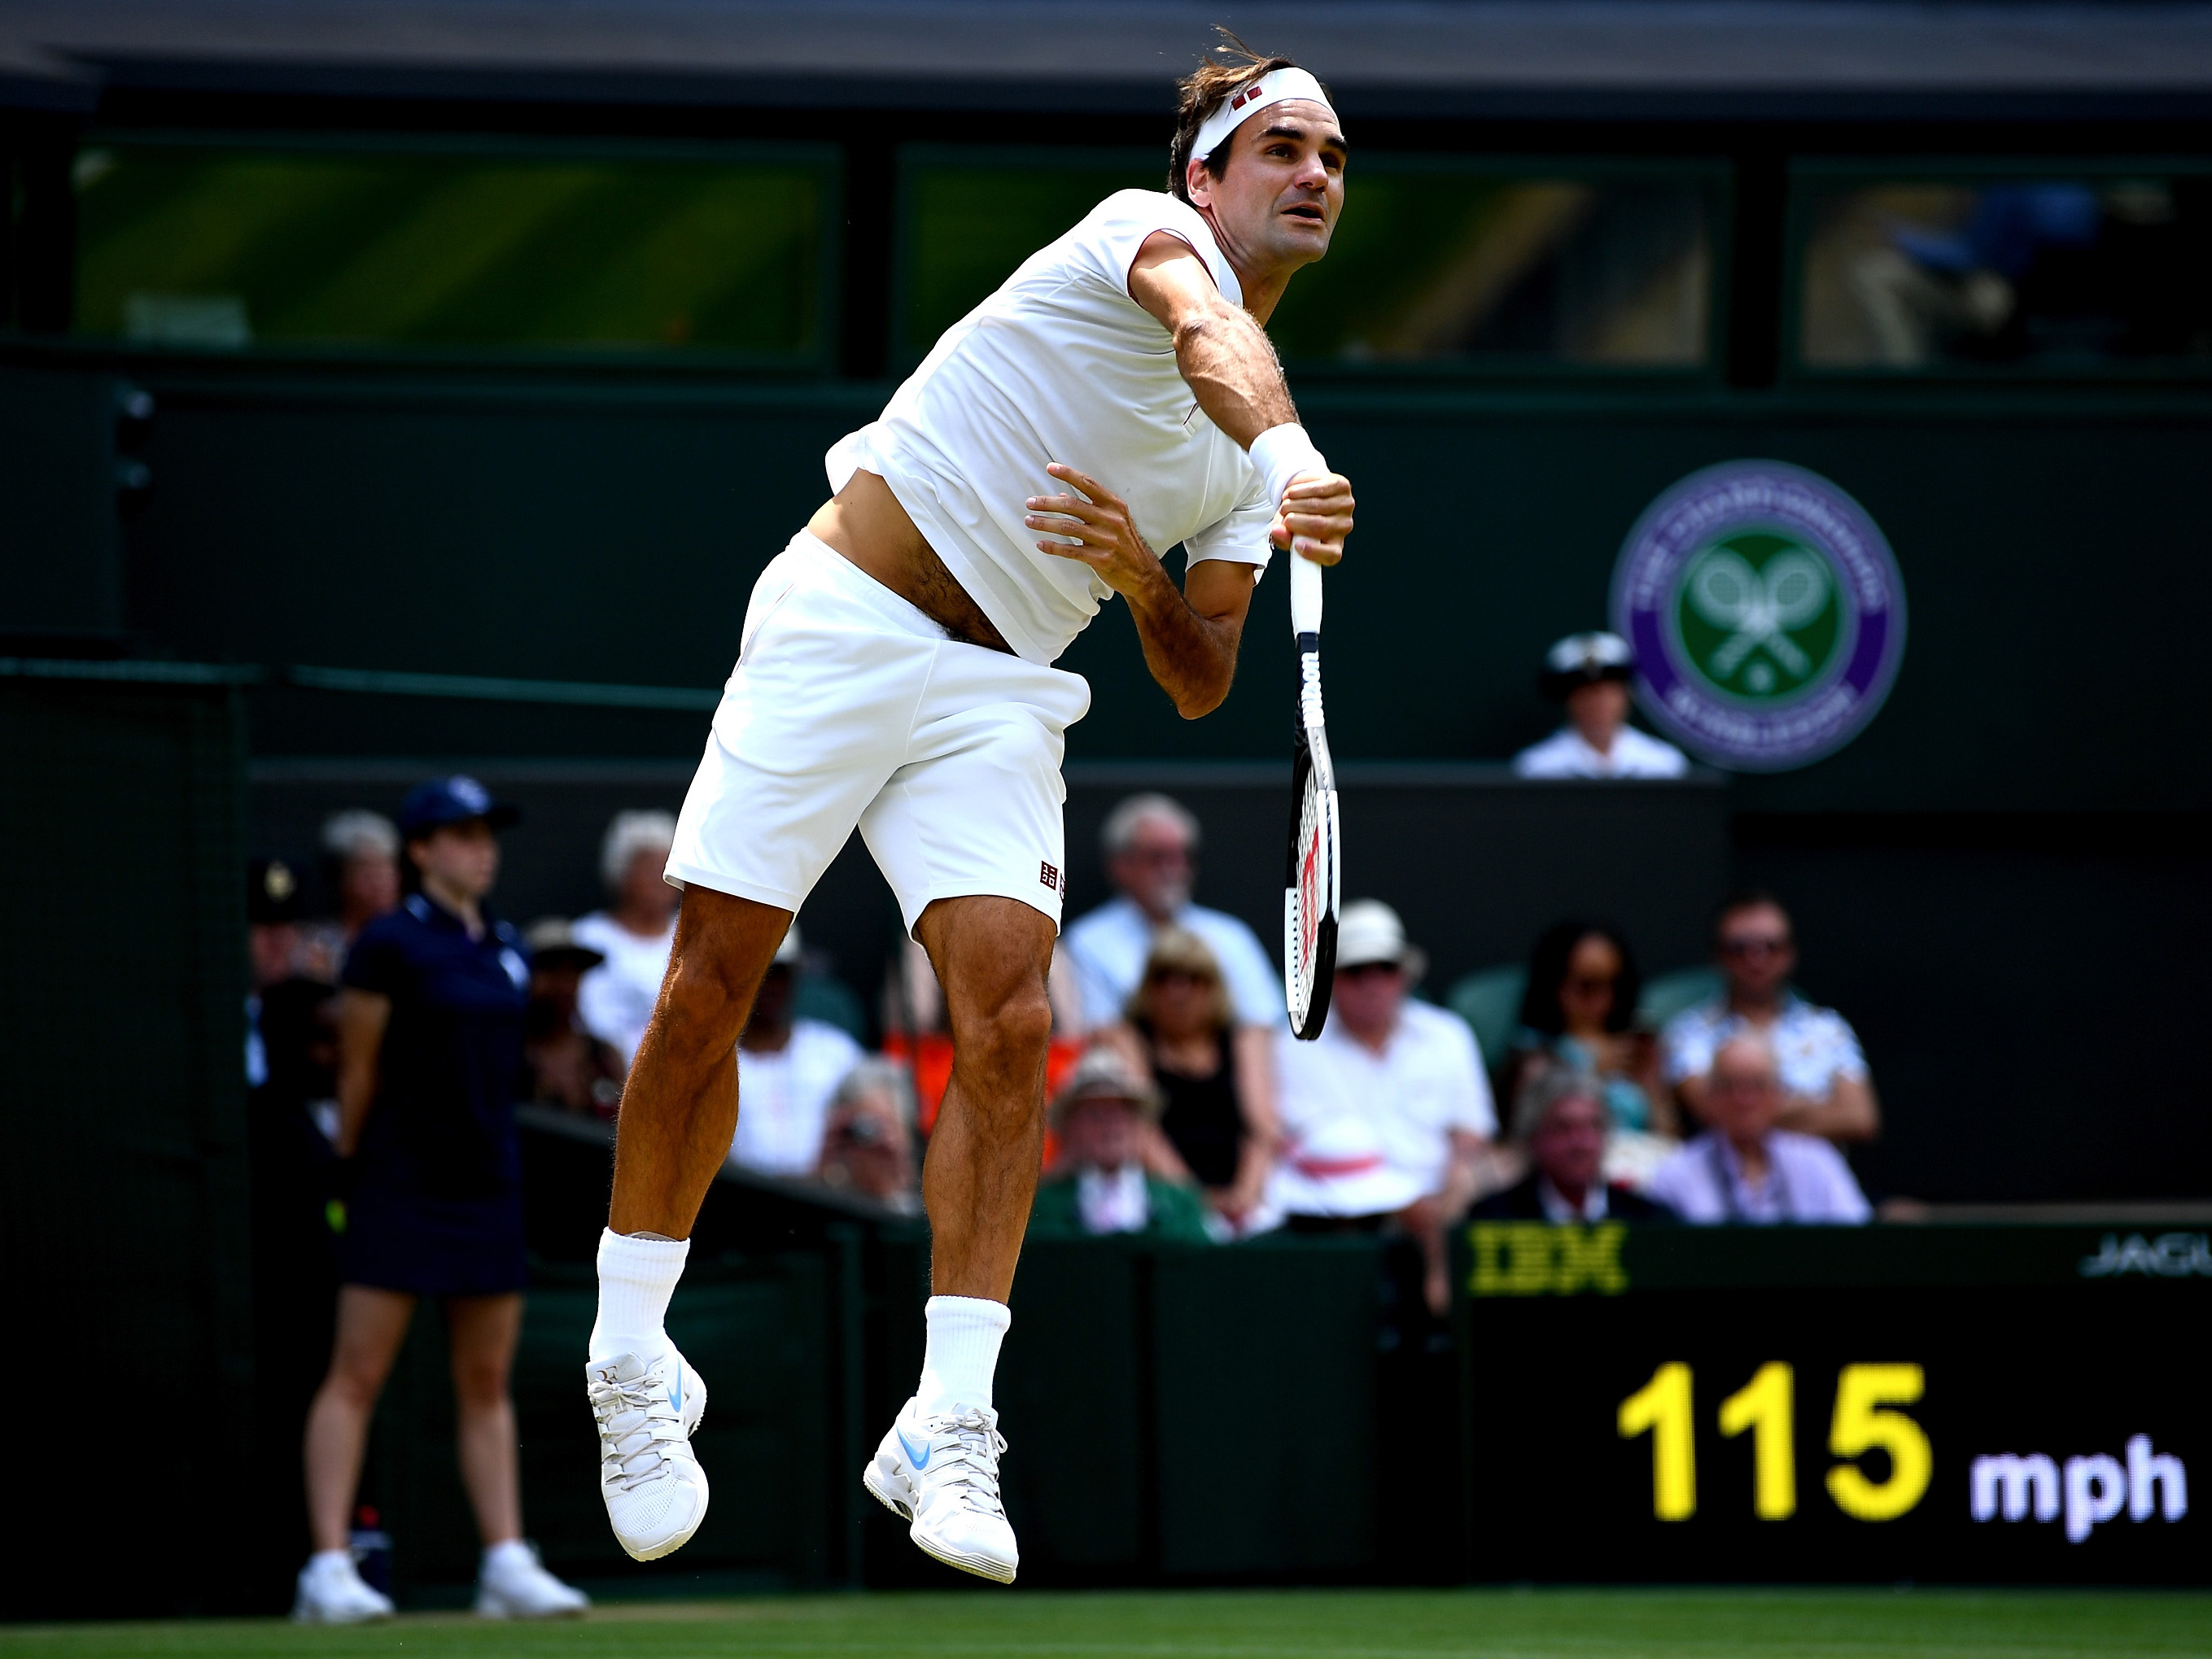 Day Seven: The Championships – Wimbledon 2018